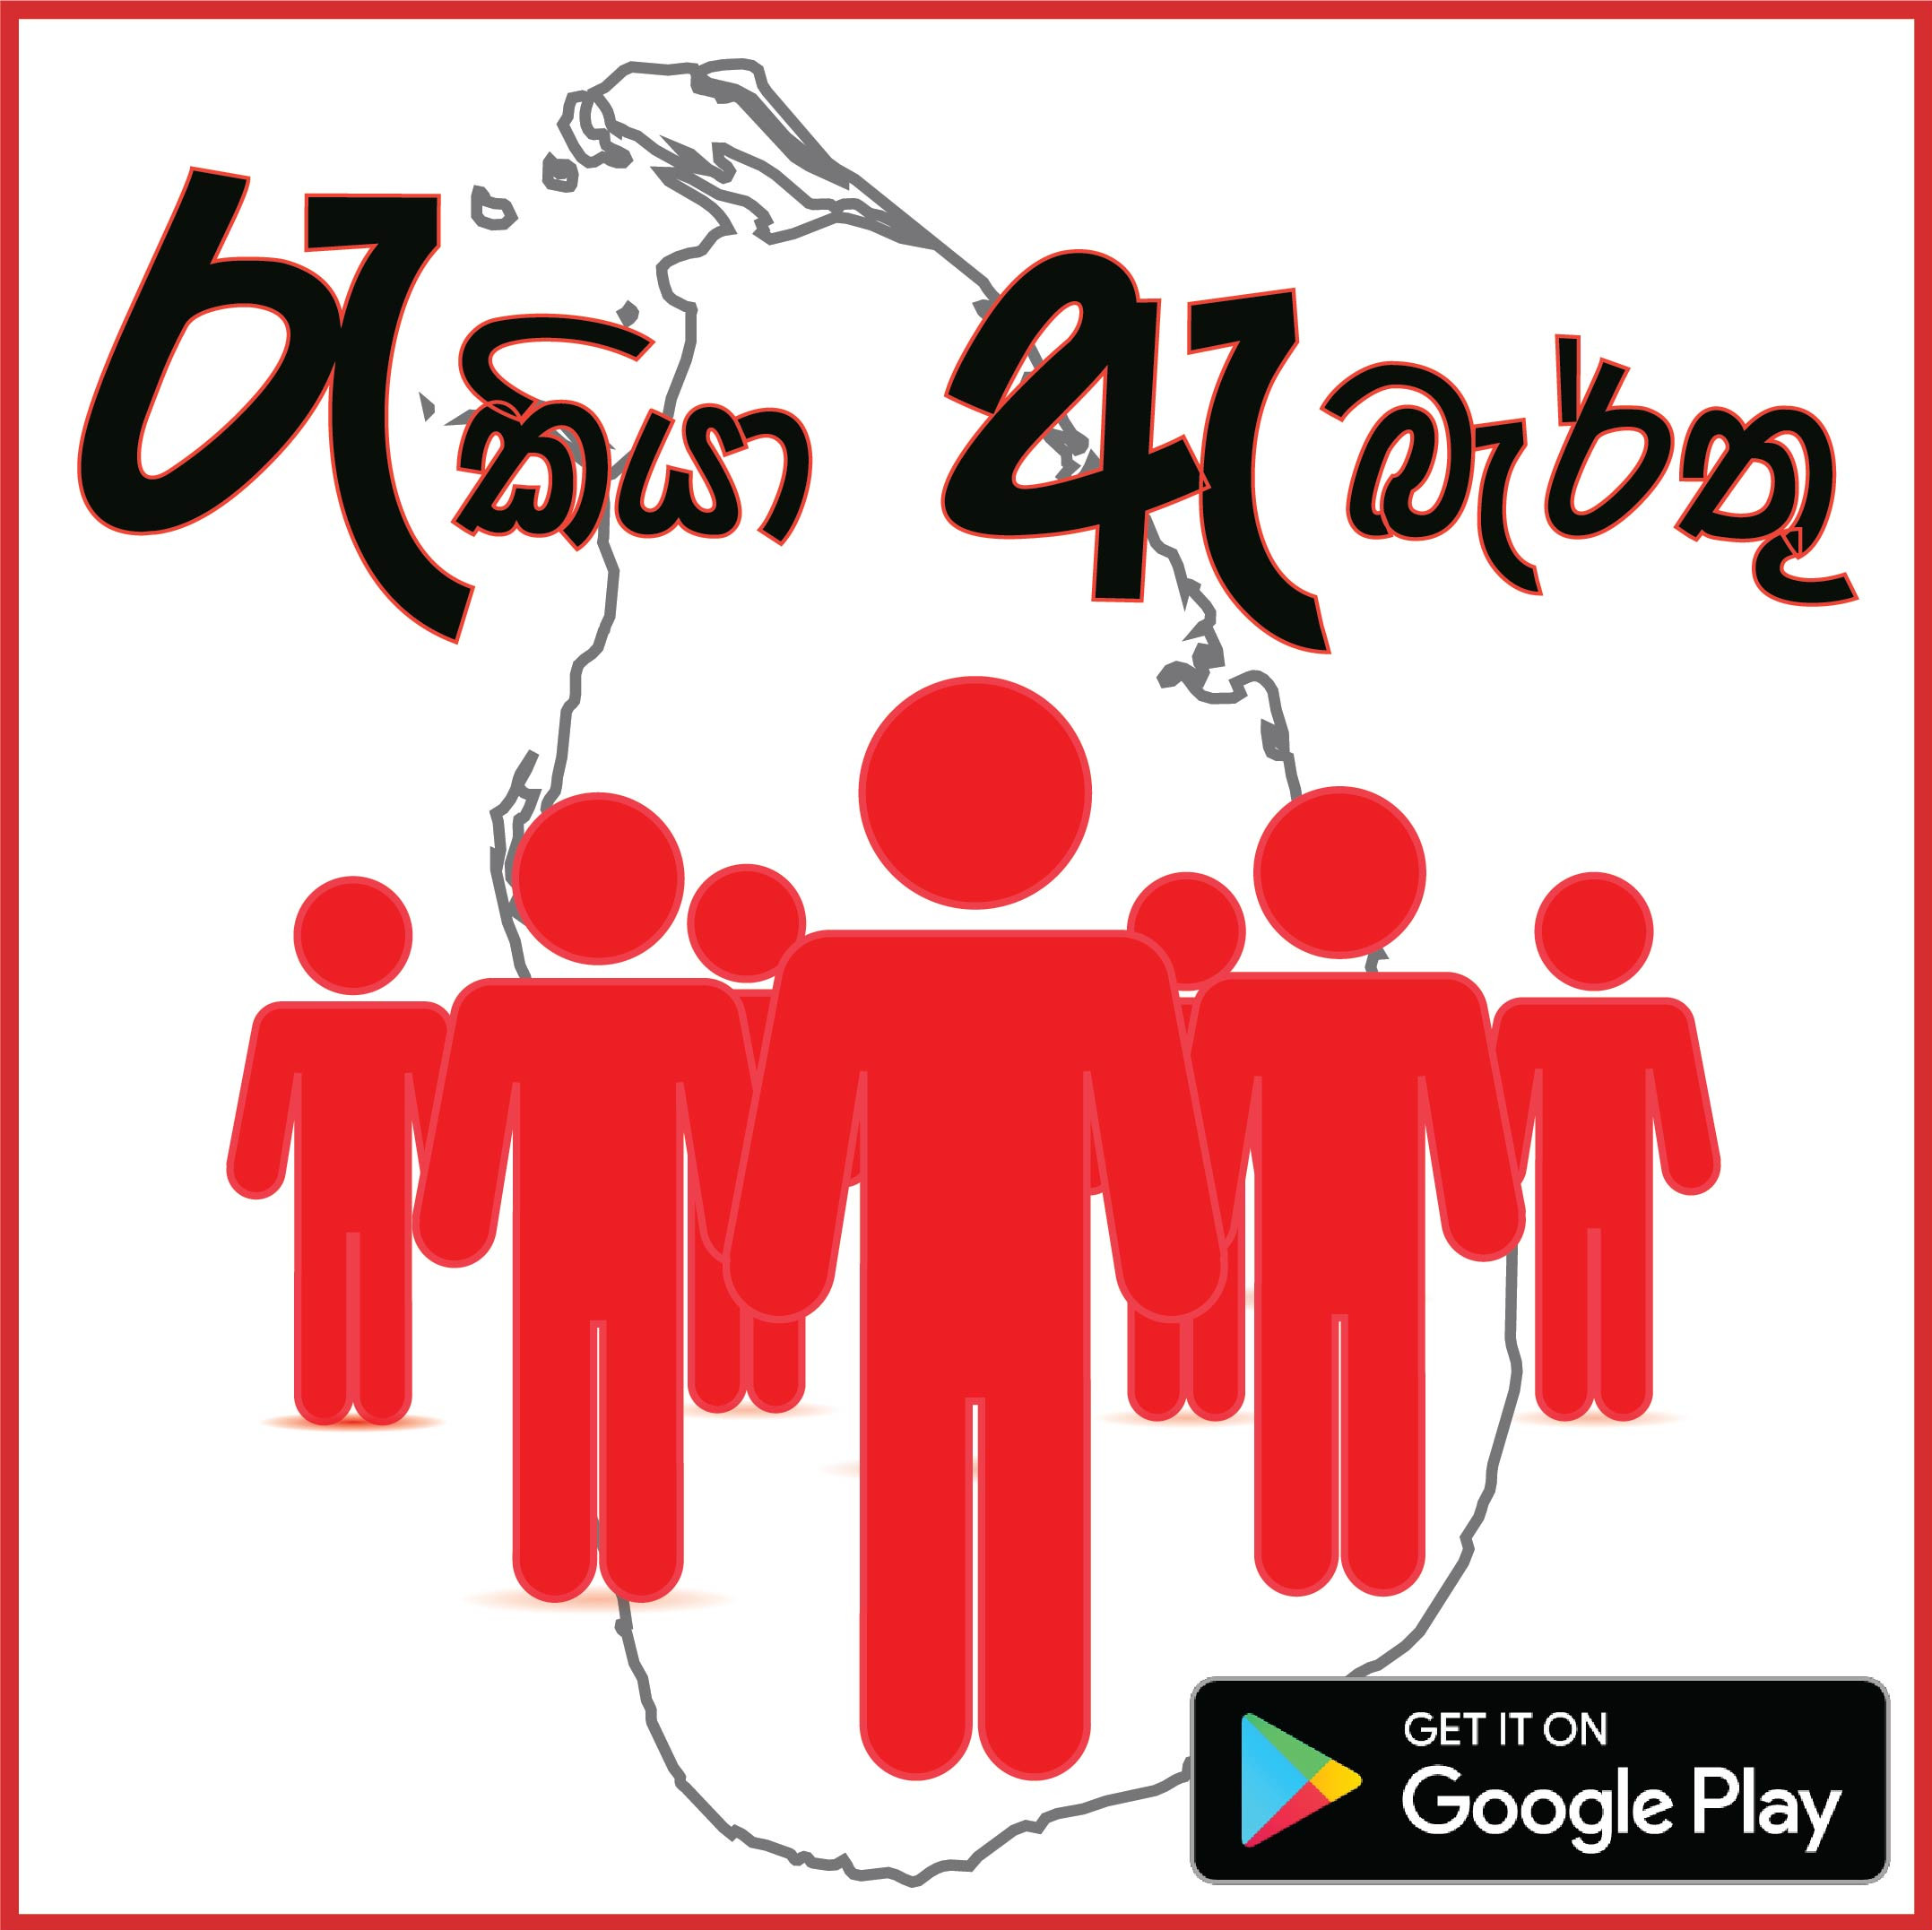 Sri Lanka Jobs Android App